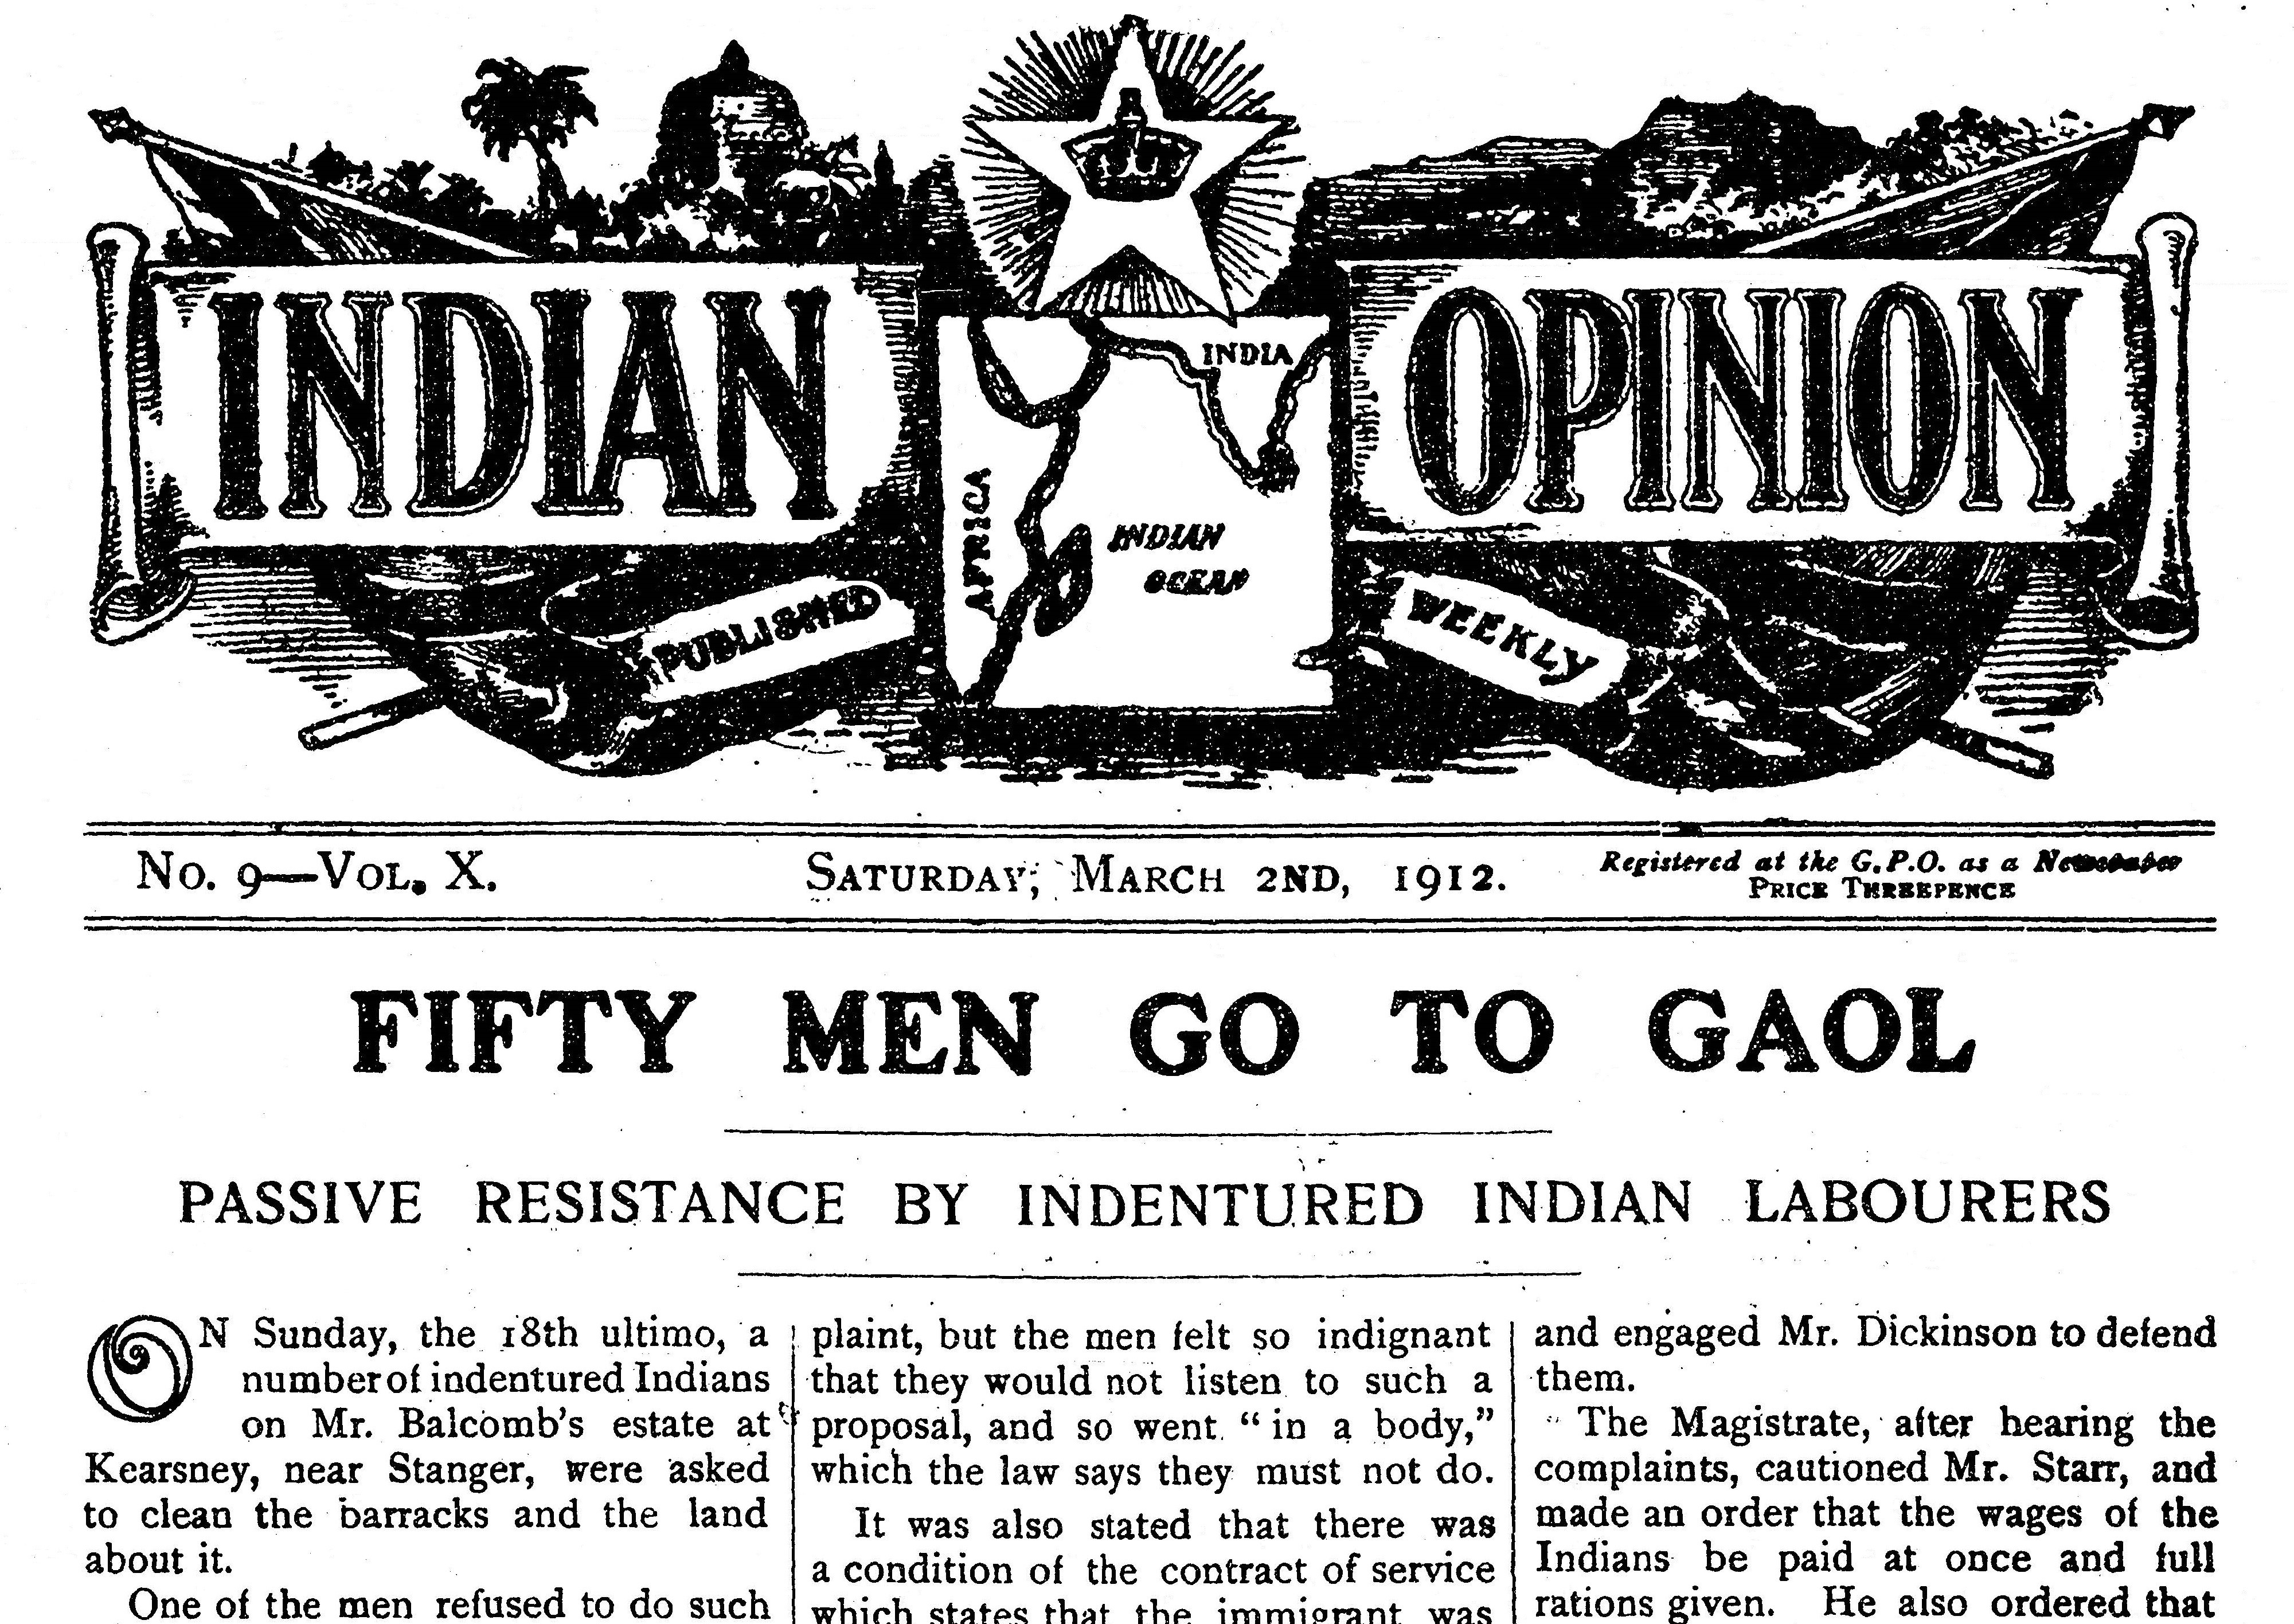 Indian Opinion: The Newspaper Founded by Gandhi in South Africa in ...